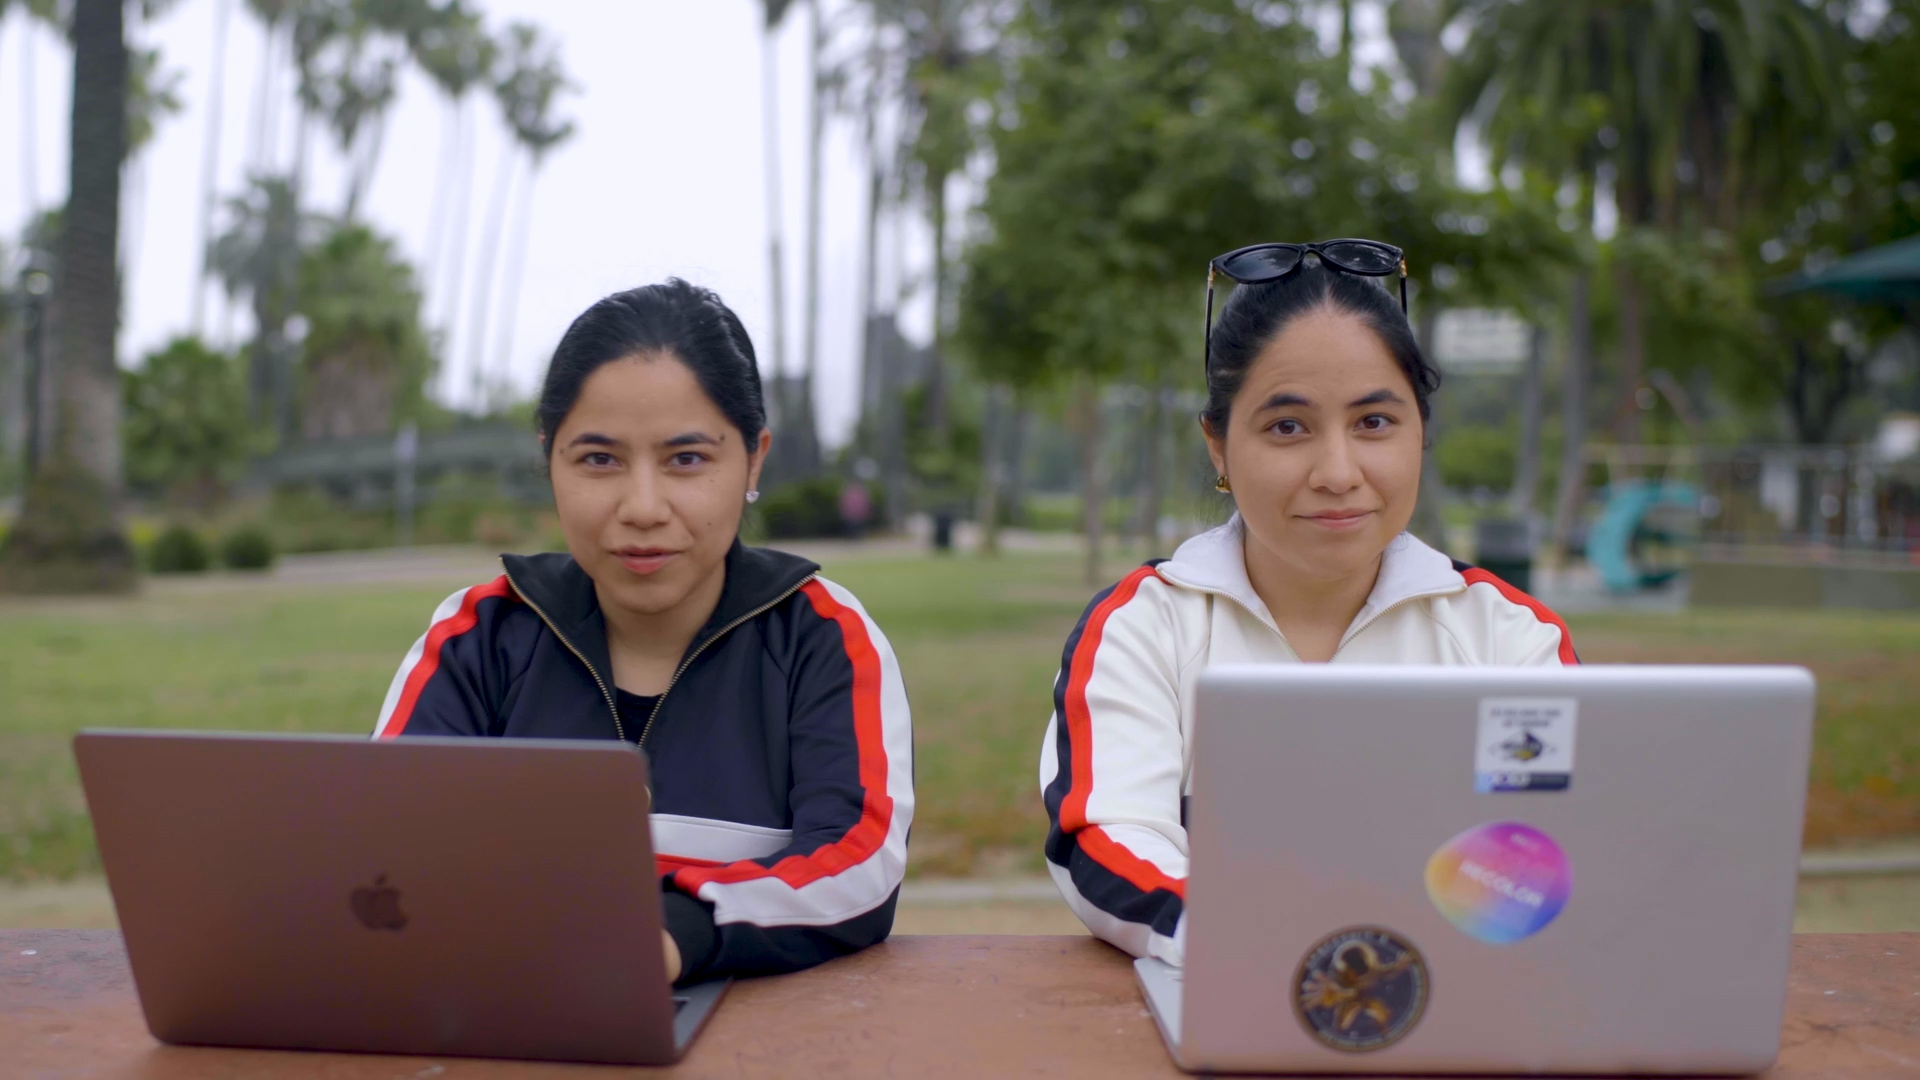 The CyberCode Twins Drive Through Los Angeles to Accelerate the Ideas of Tech Entrepreneurs